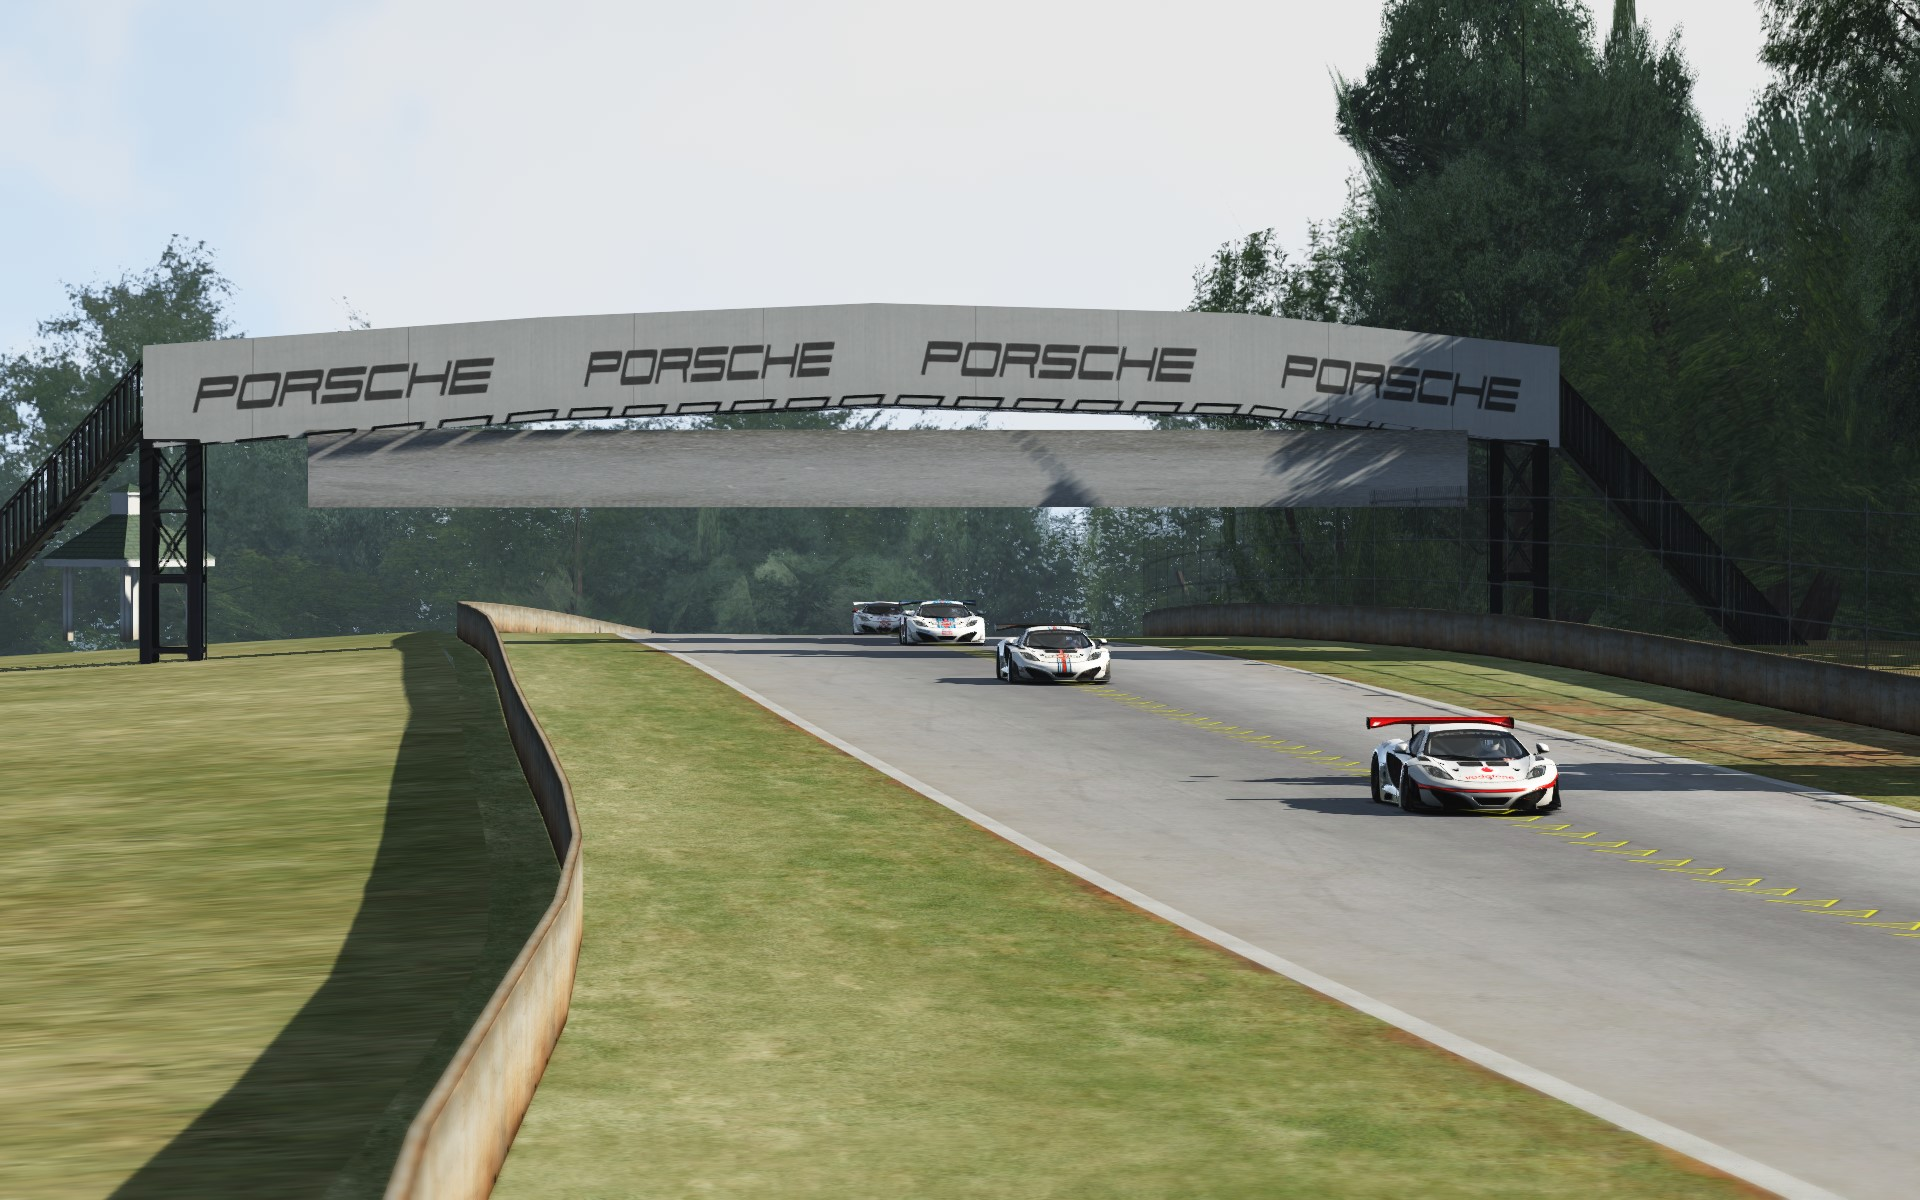 Screenshot_mclaren_mp412c_gt3_road atlanta_10-8-115-14-1-21.jpg